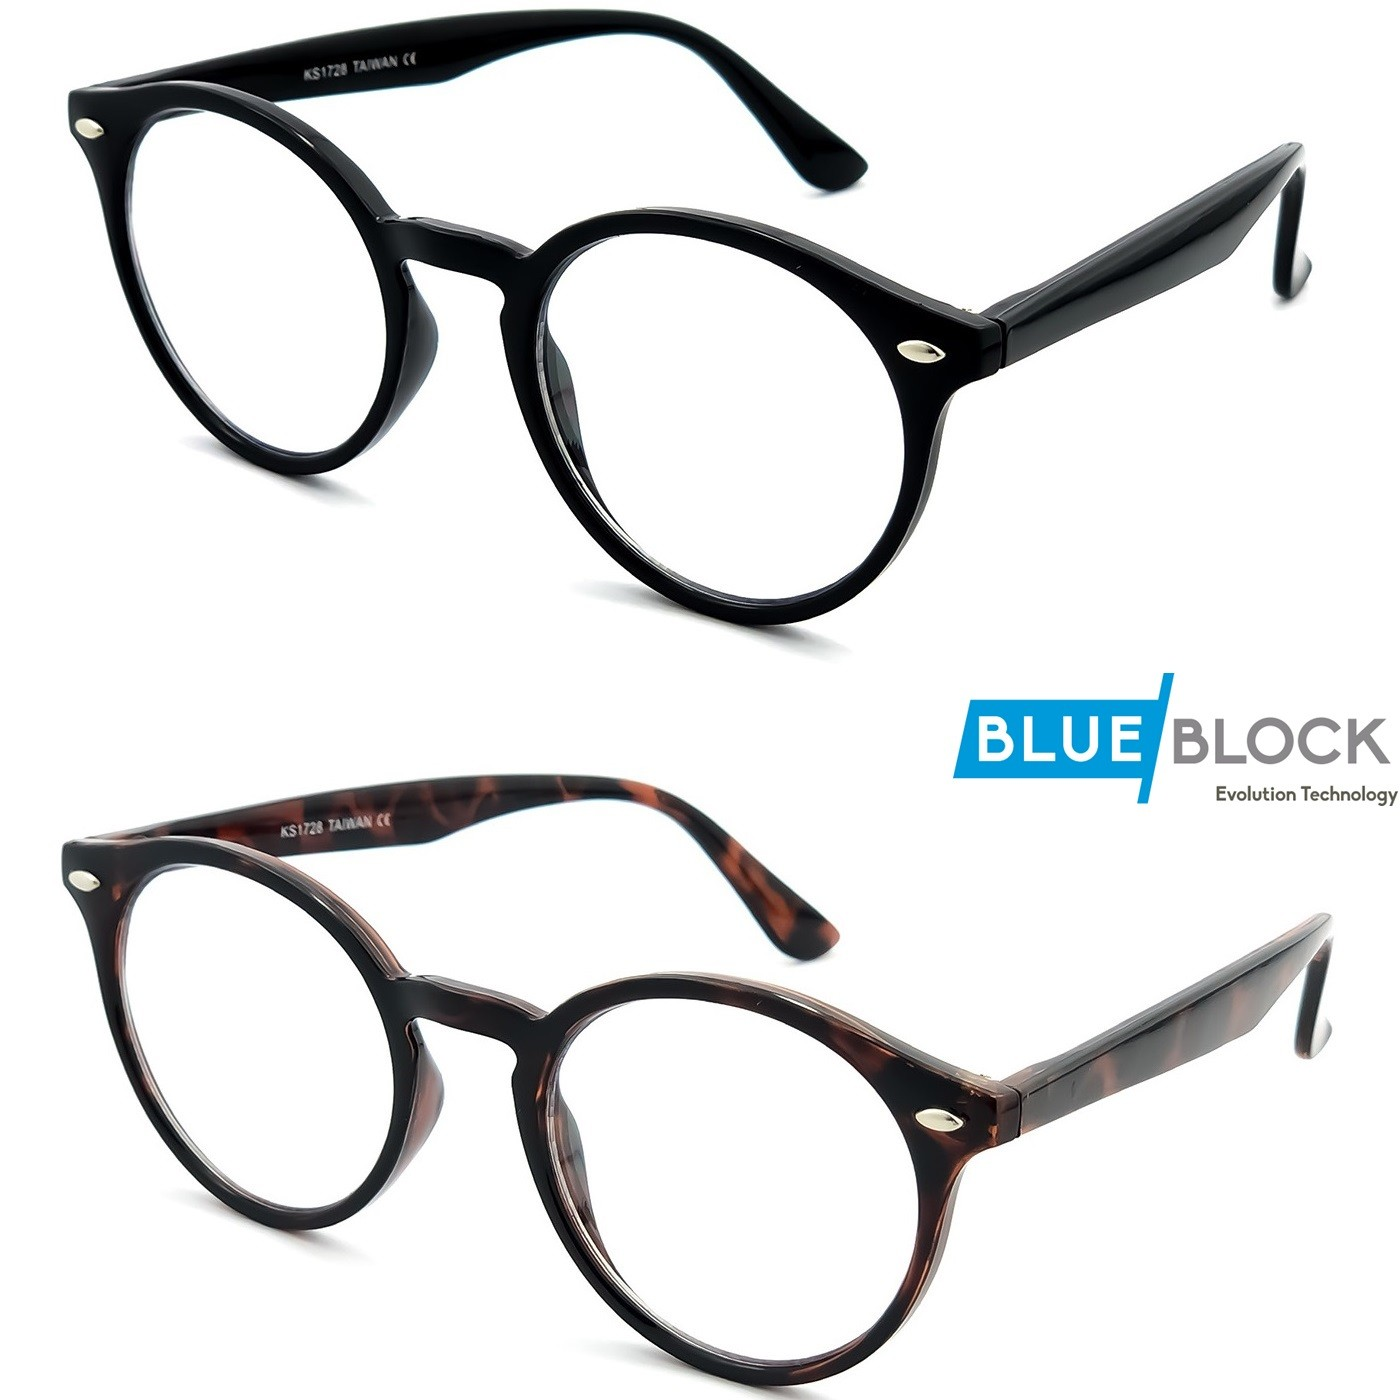 COMPUTER neutral glasses KISS® - style MOSCOT mod. WAVE ICONIC - PROTECTIVE LENSES FOR PC, TV, SMARTPHONE, GAMING - Filter Bl...